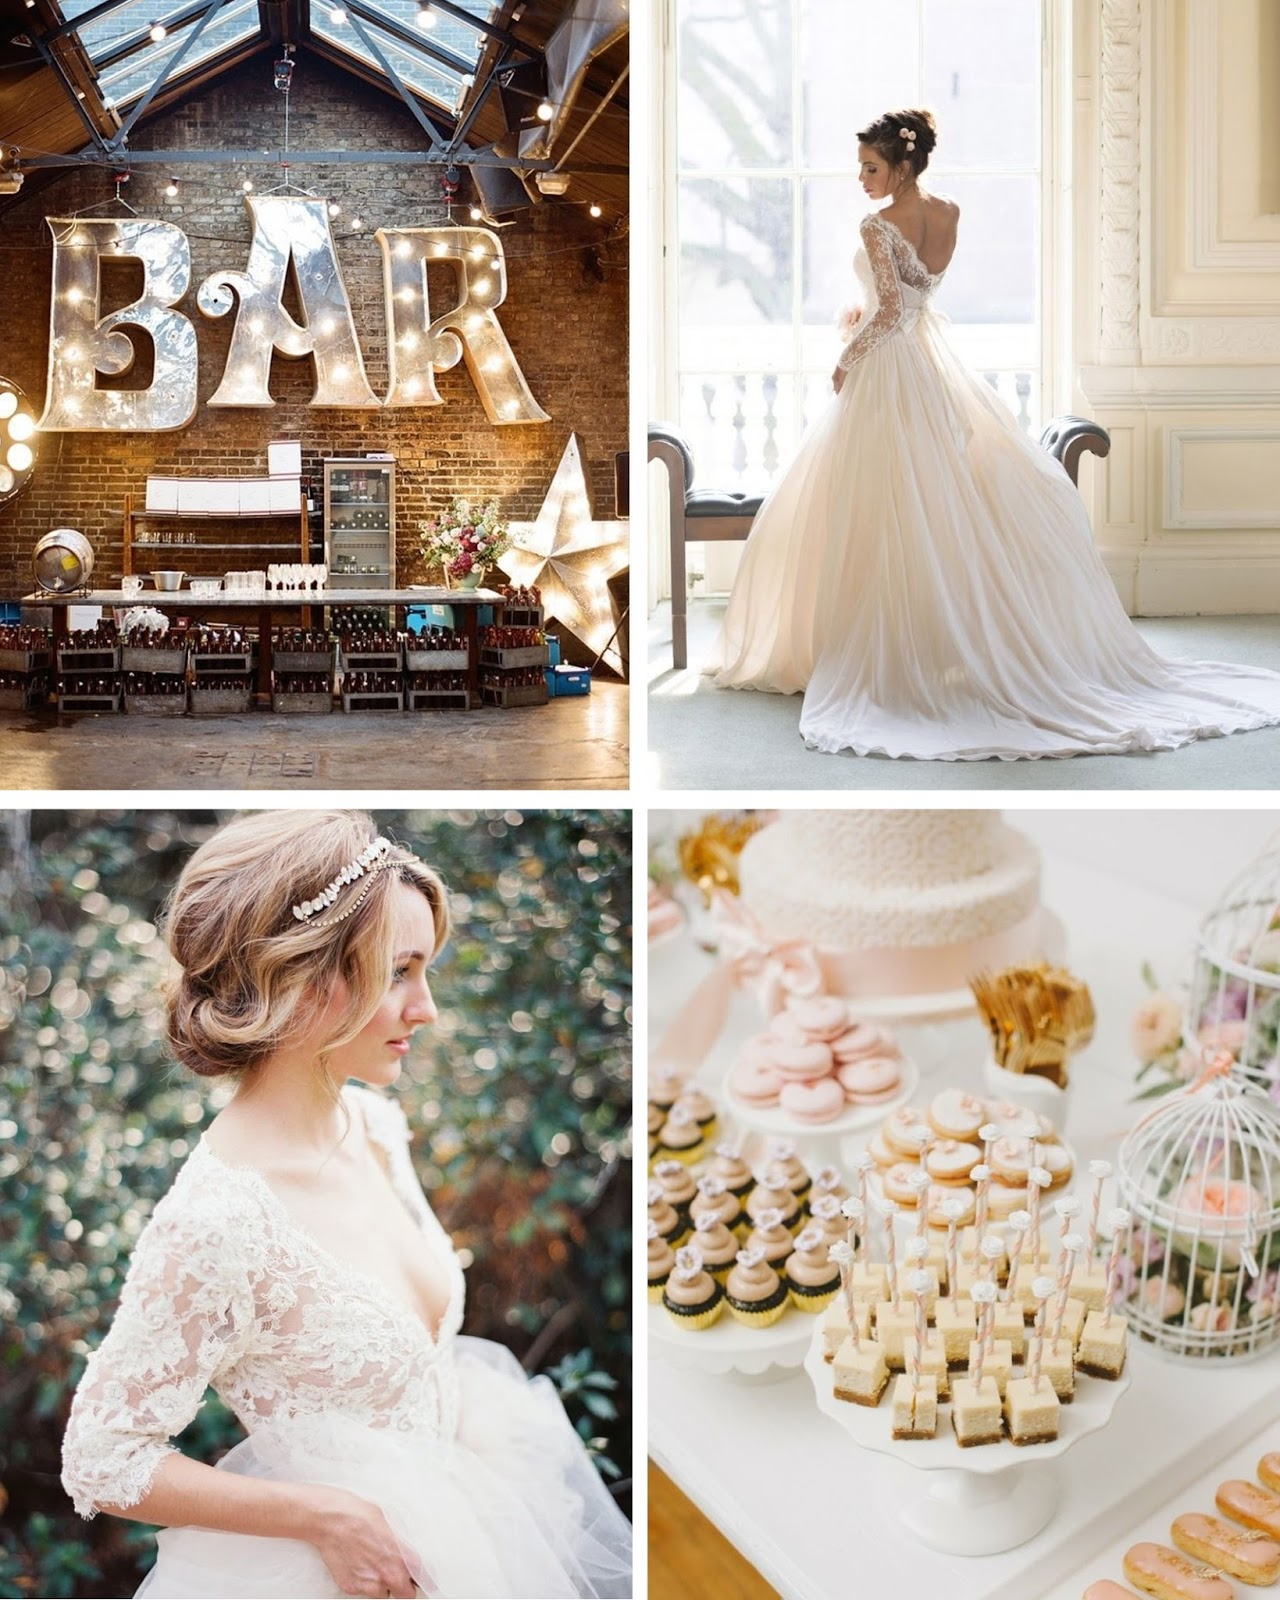 Wedding Ideas And Inspirations: WEDDING INSPIRATION